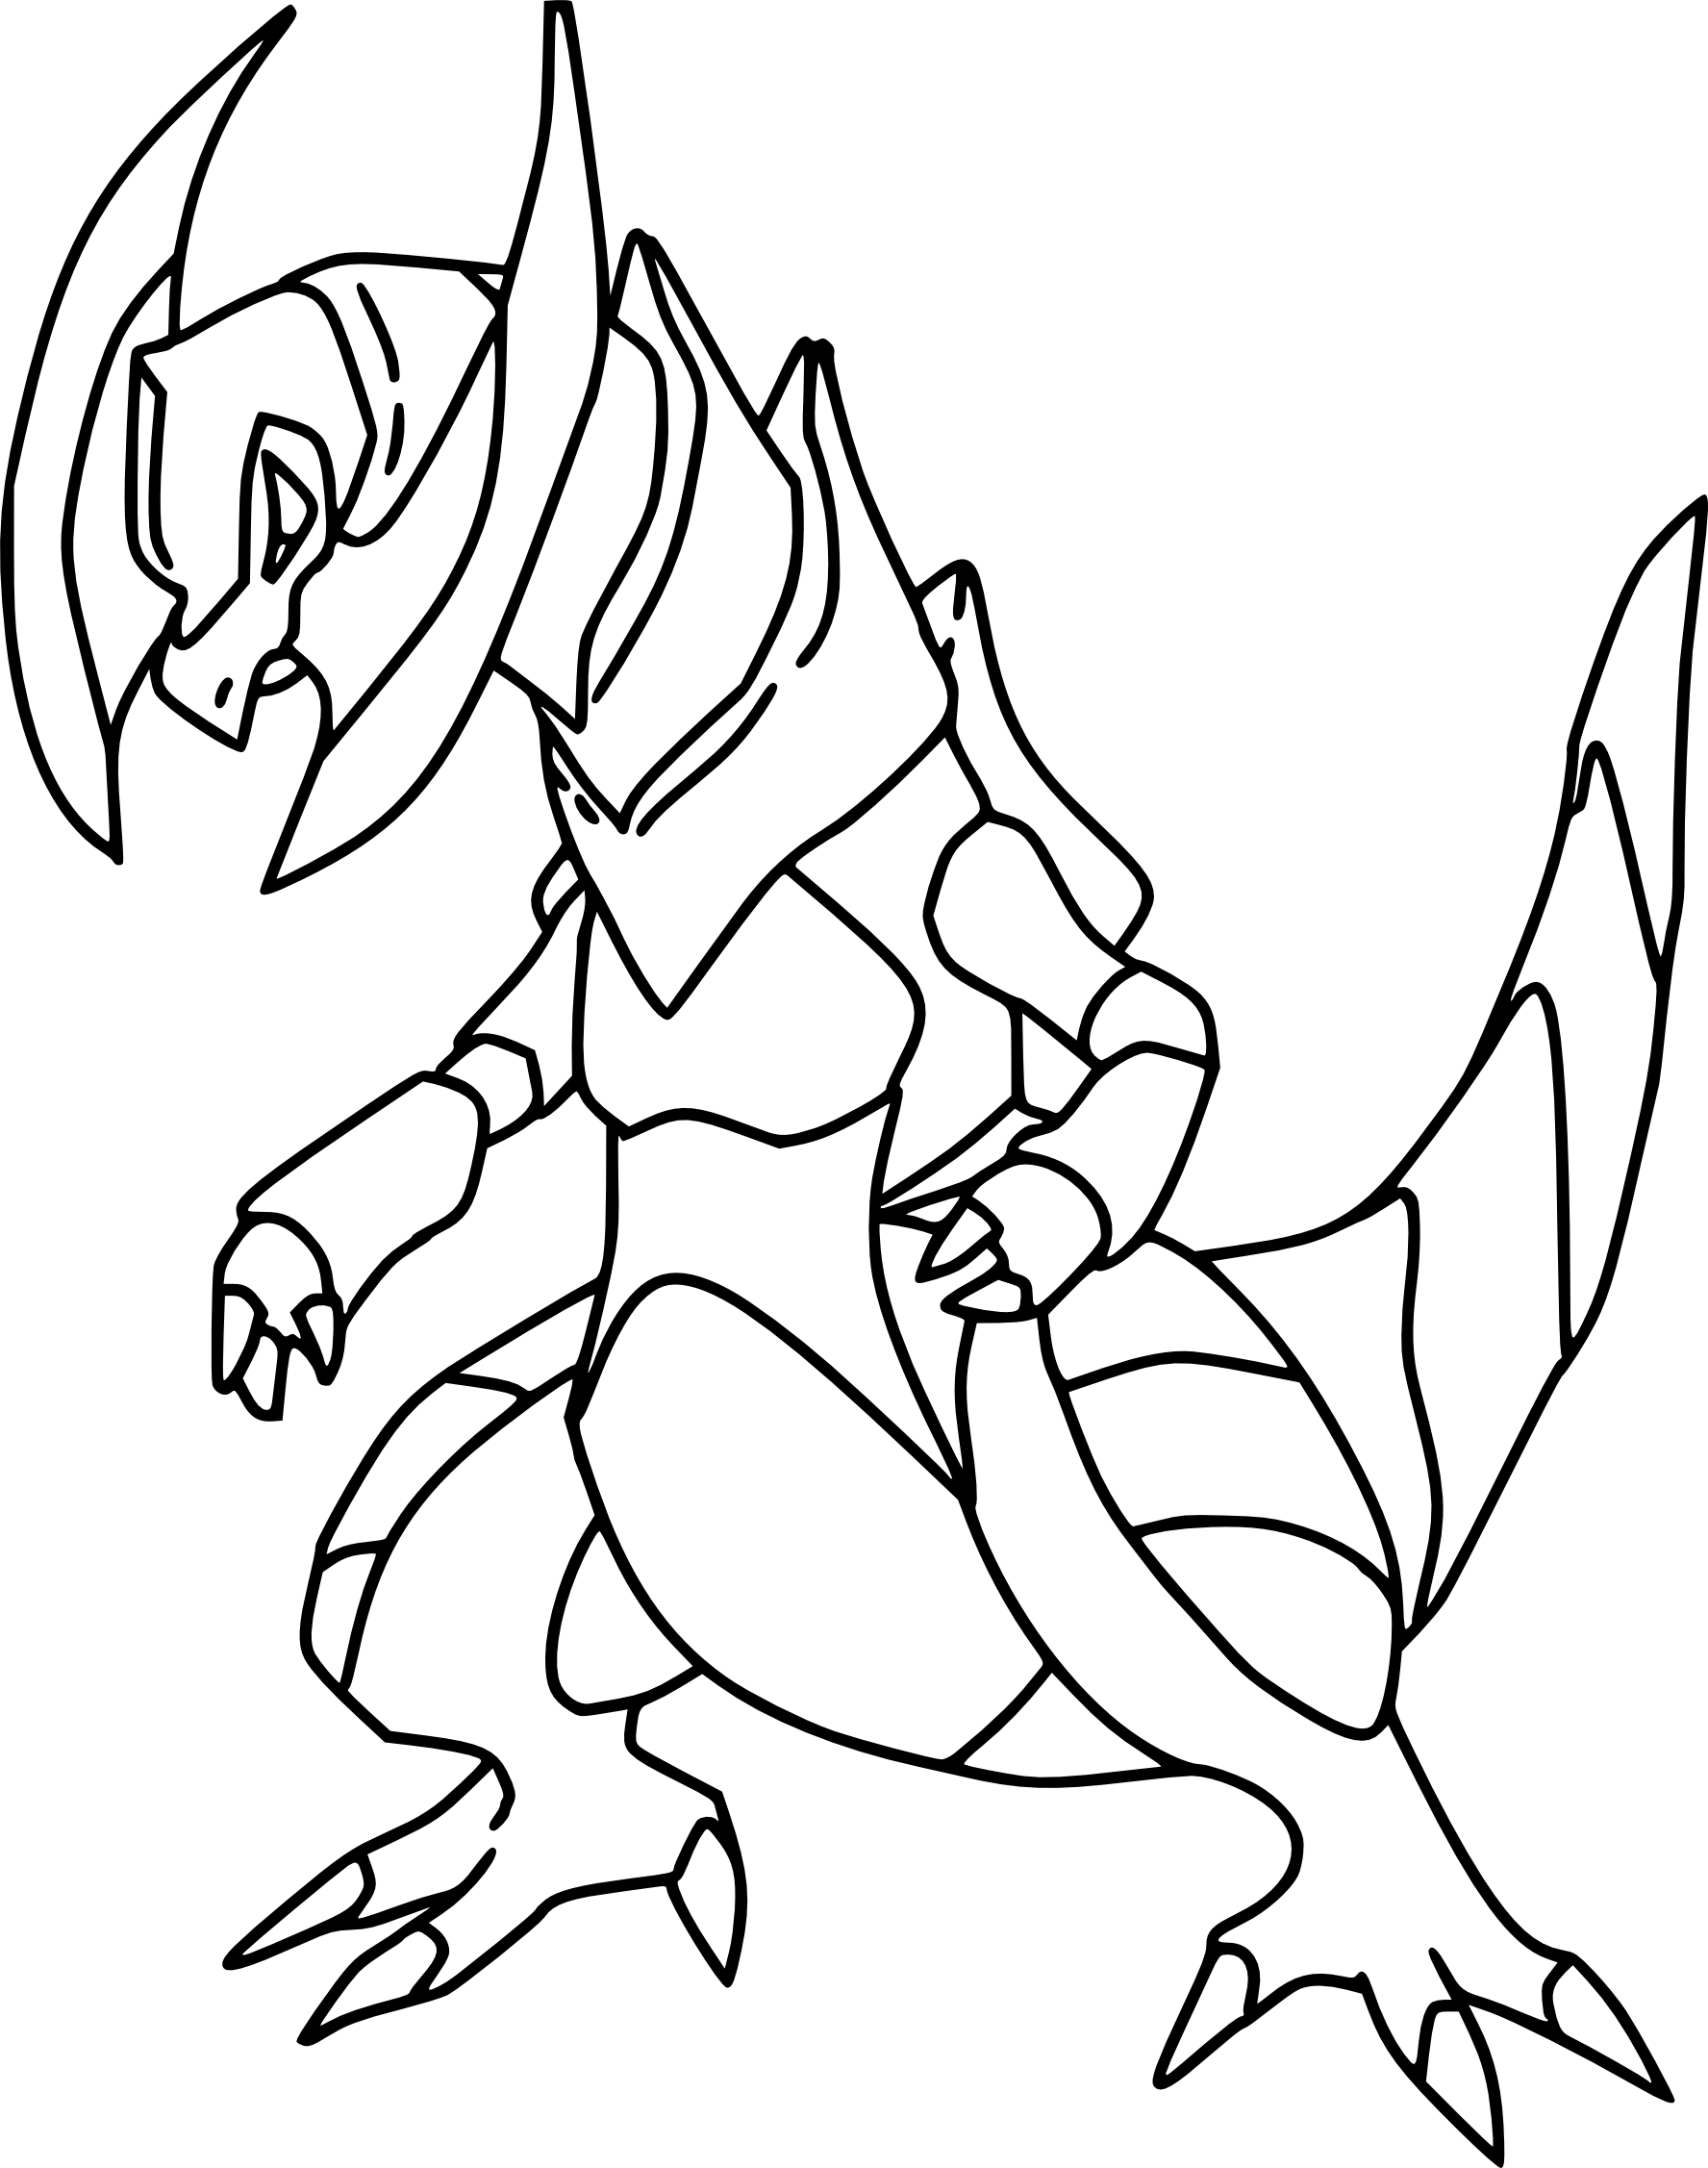 The gallery for > PokemonxAnd Y Coloring Pages Frogadier